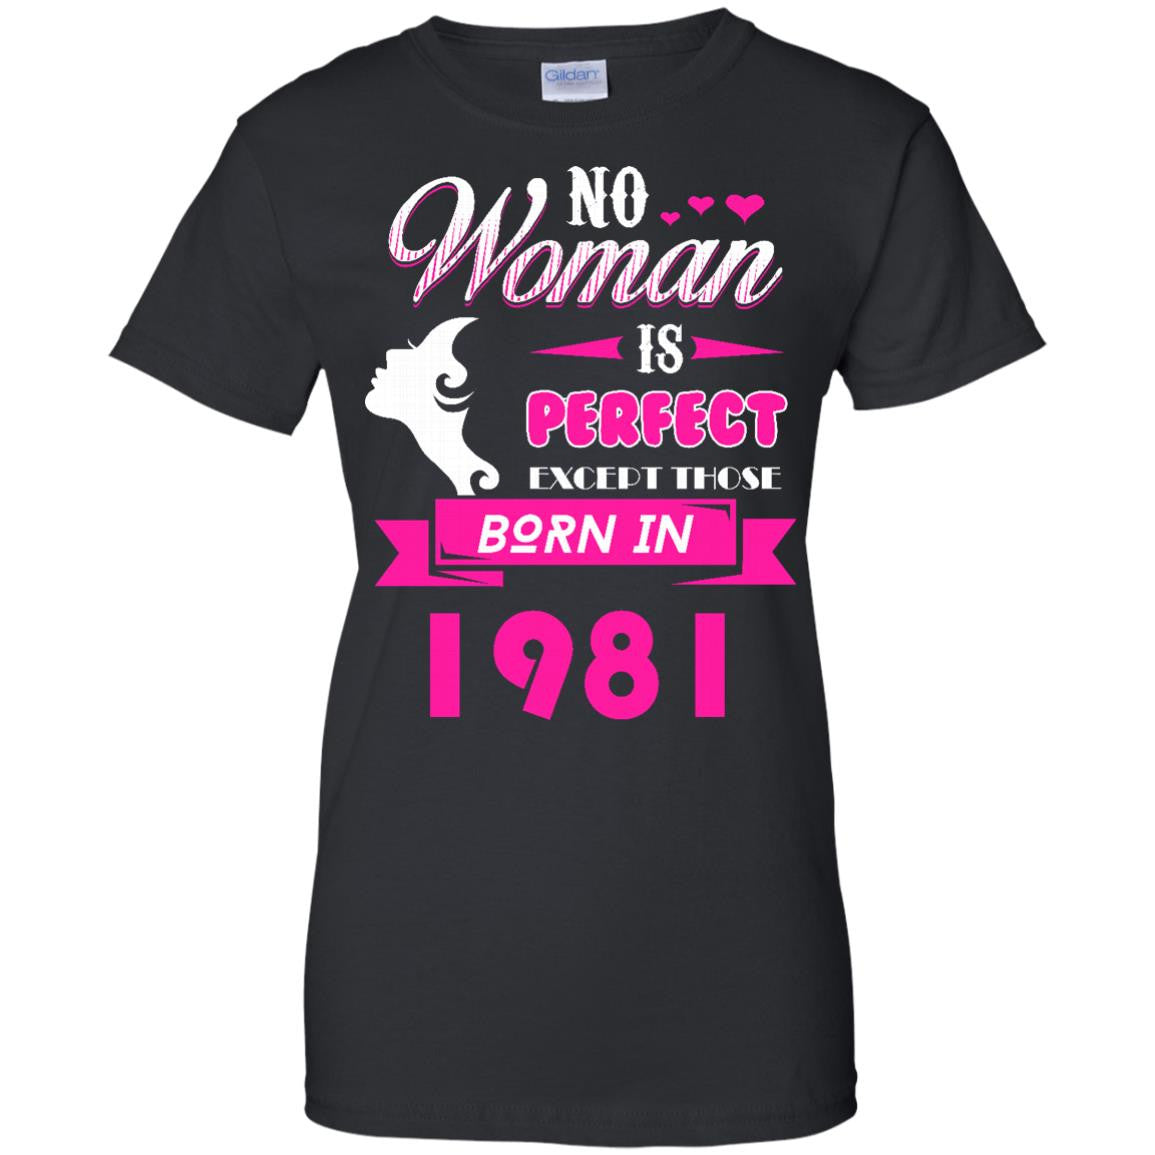 1981 Woman Shirts No Woman Perfect Except Those In 1981 T-shirts Hoodies Sweatshirts